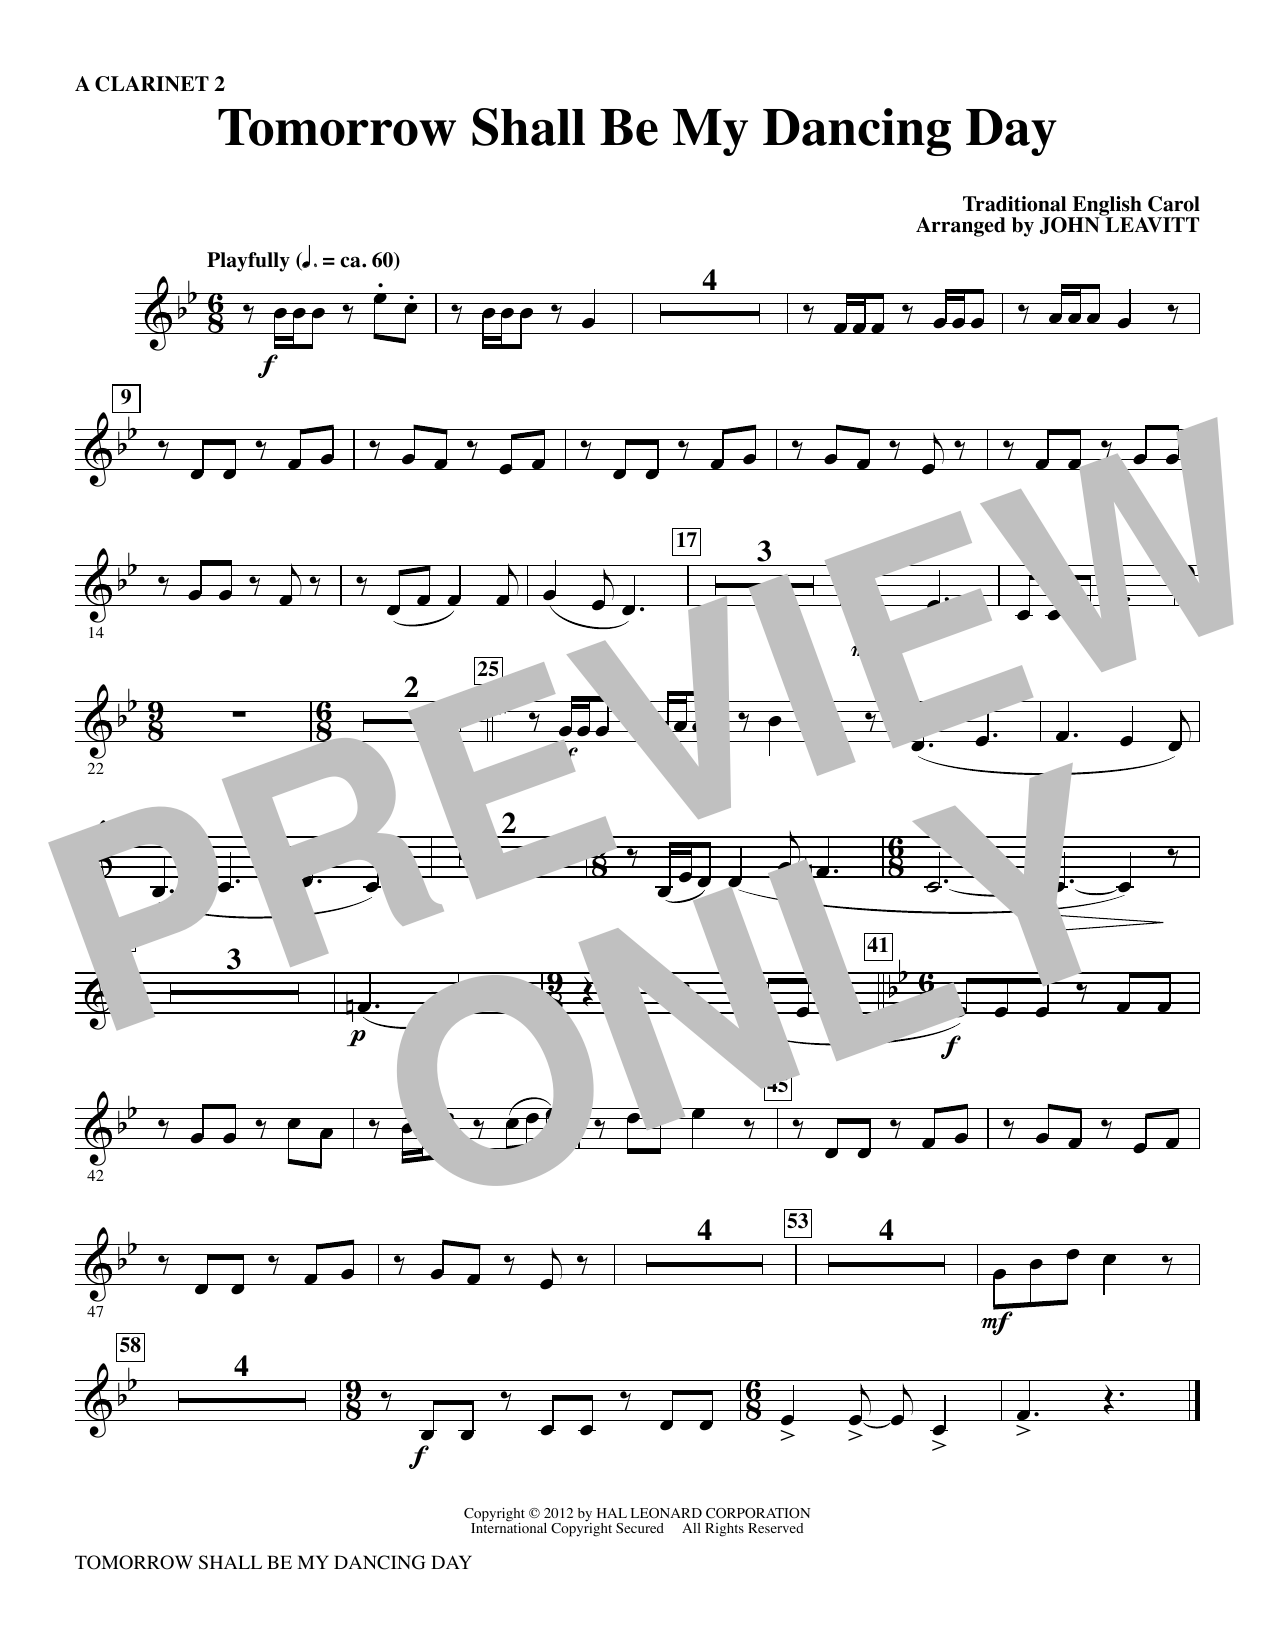 Tomorrow Shall Be My Dancing Day - A Clarinet 2 Sheet Music